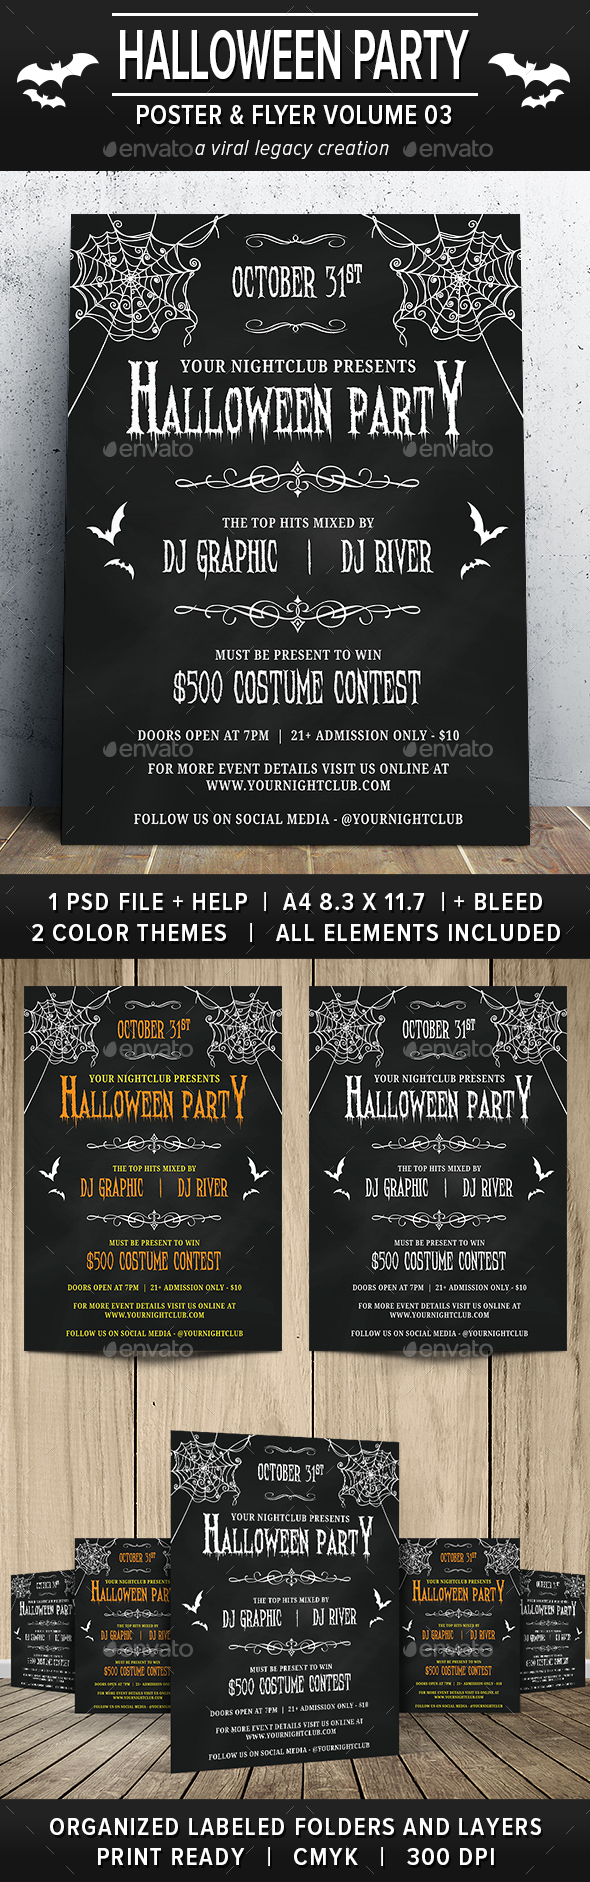 Halloween Party Poster / Flyer V03